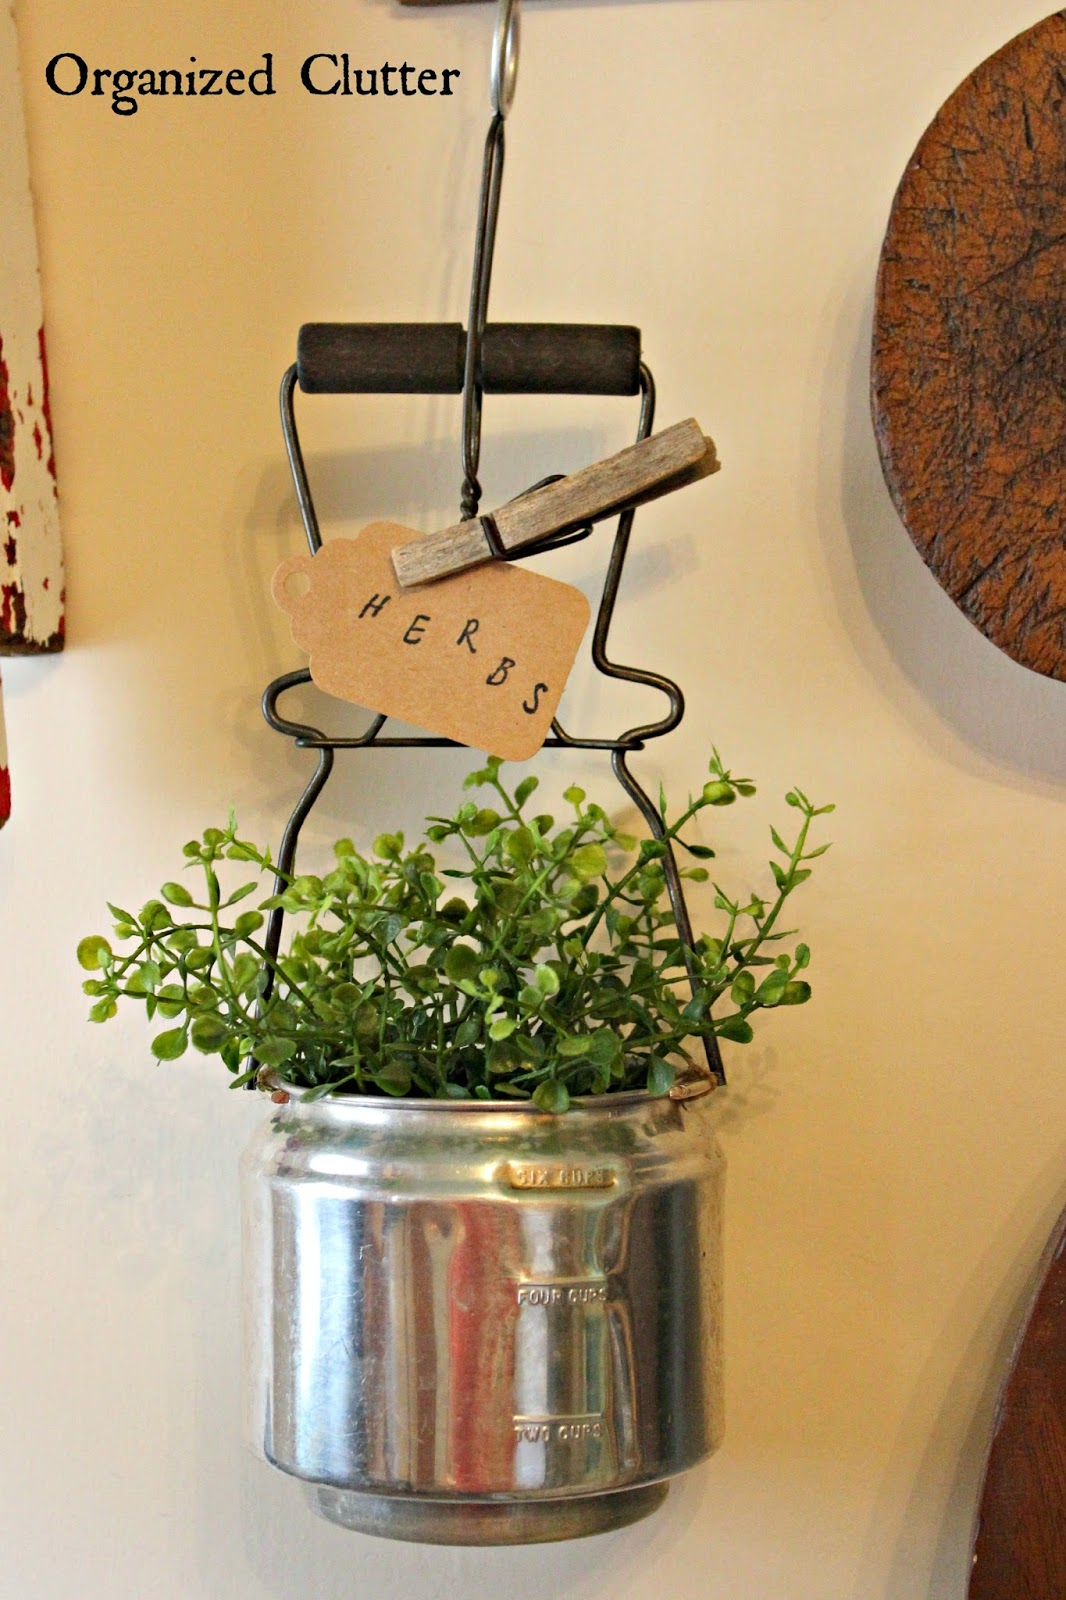 Thrift Shop Utensil Repurposed Planter www.organizedclutter.net